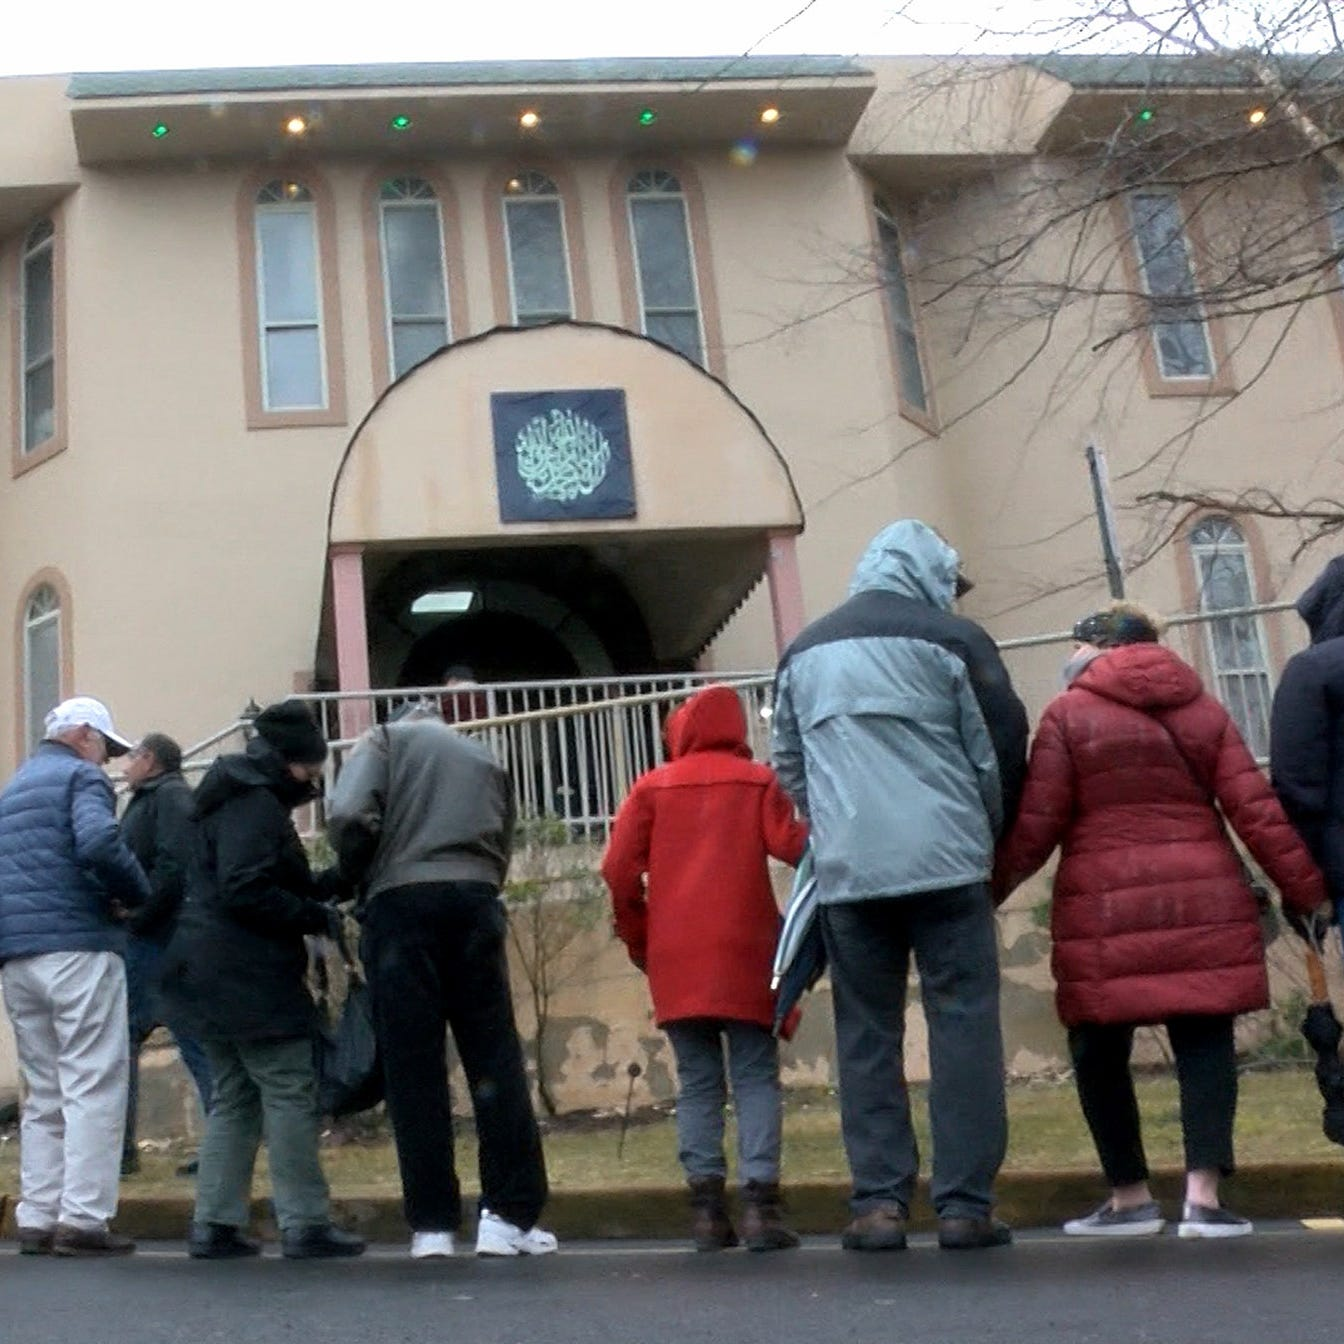 New Zealand shootings: Middletown mosque surrounded by interfaith love